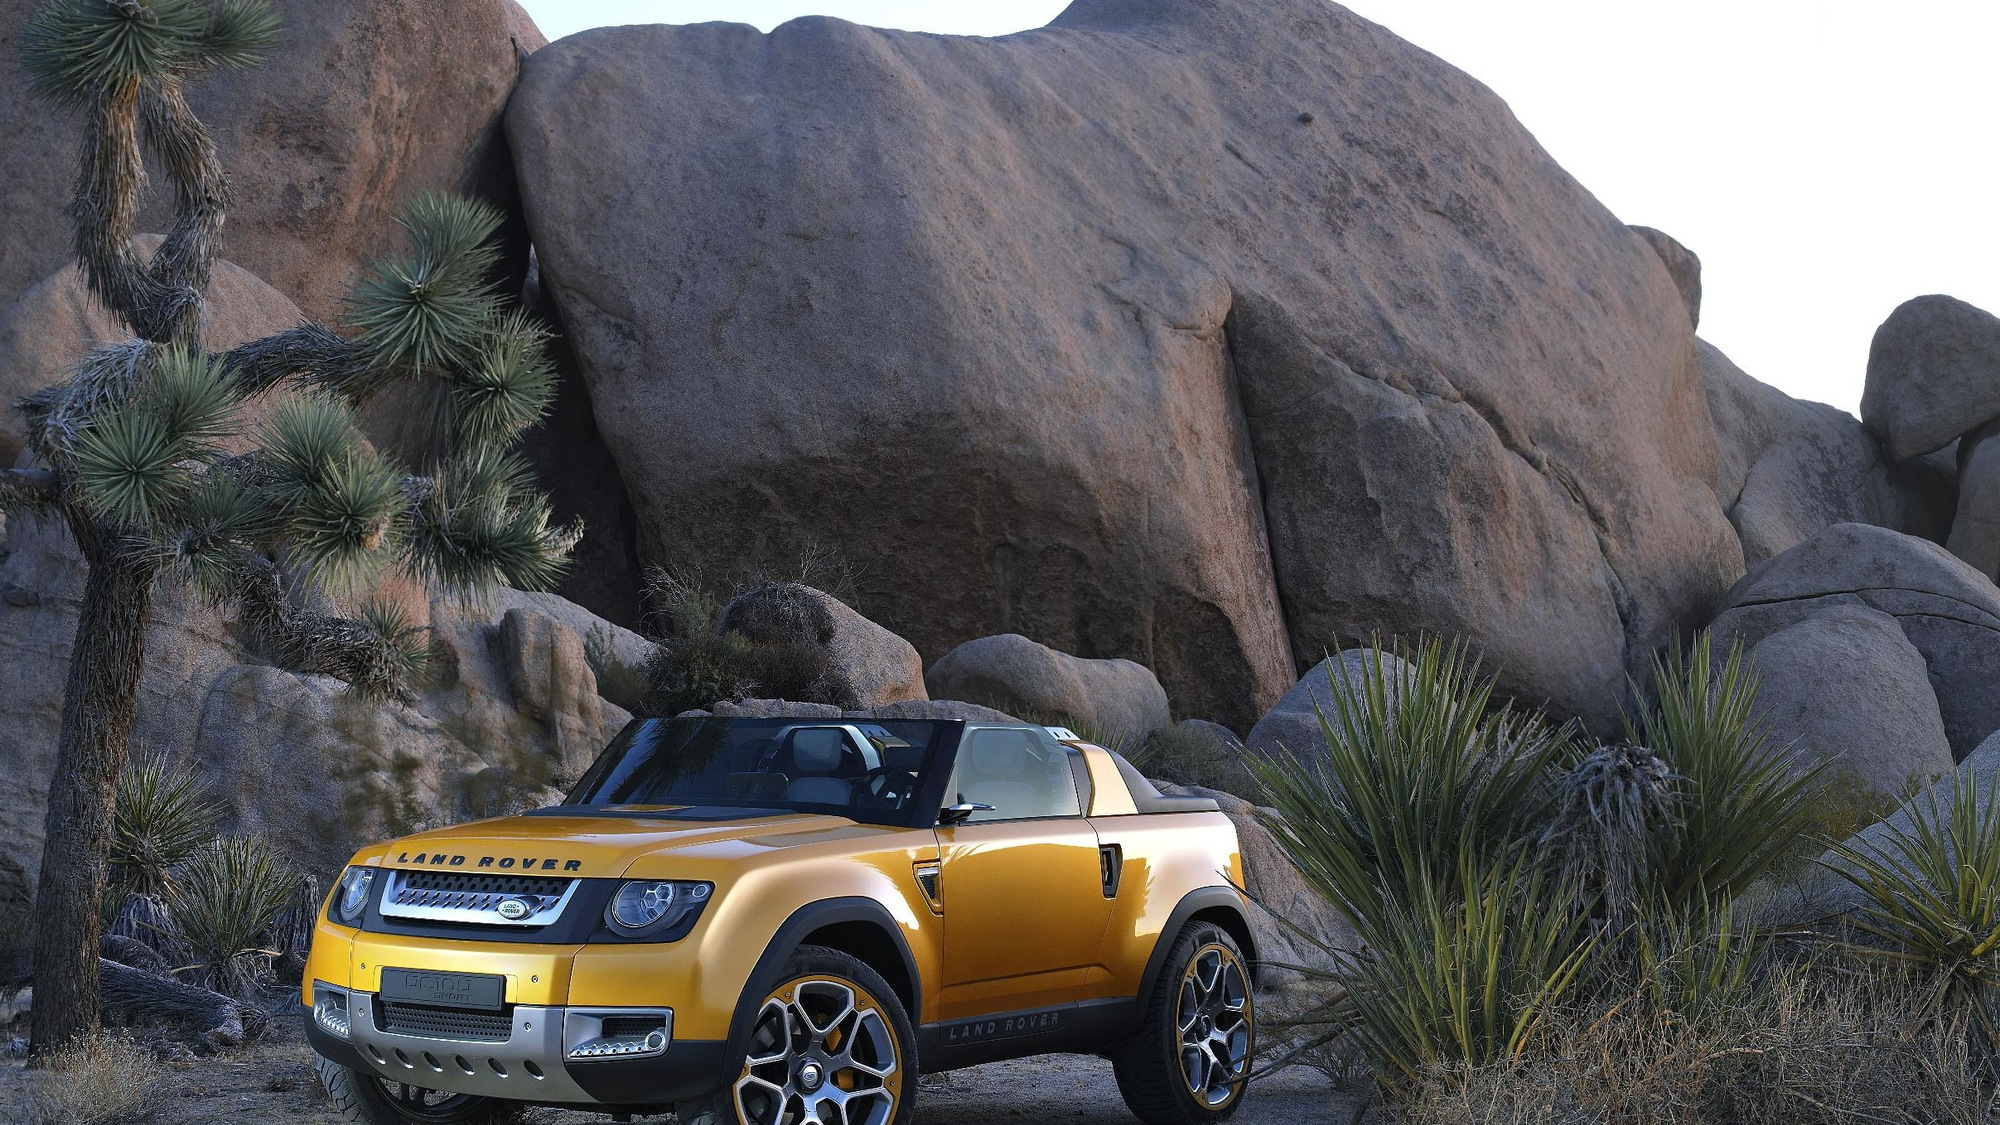 Land Rover's DC100 Sport concept